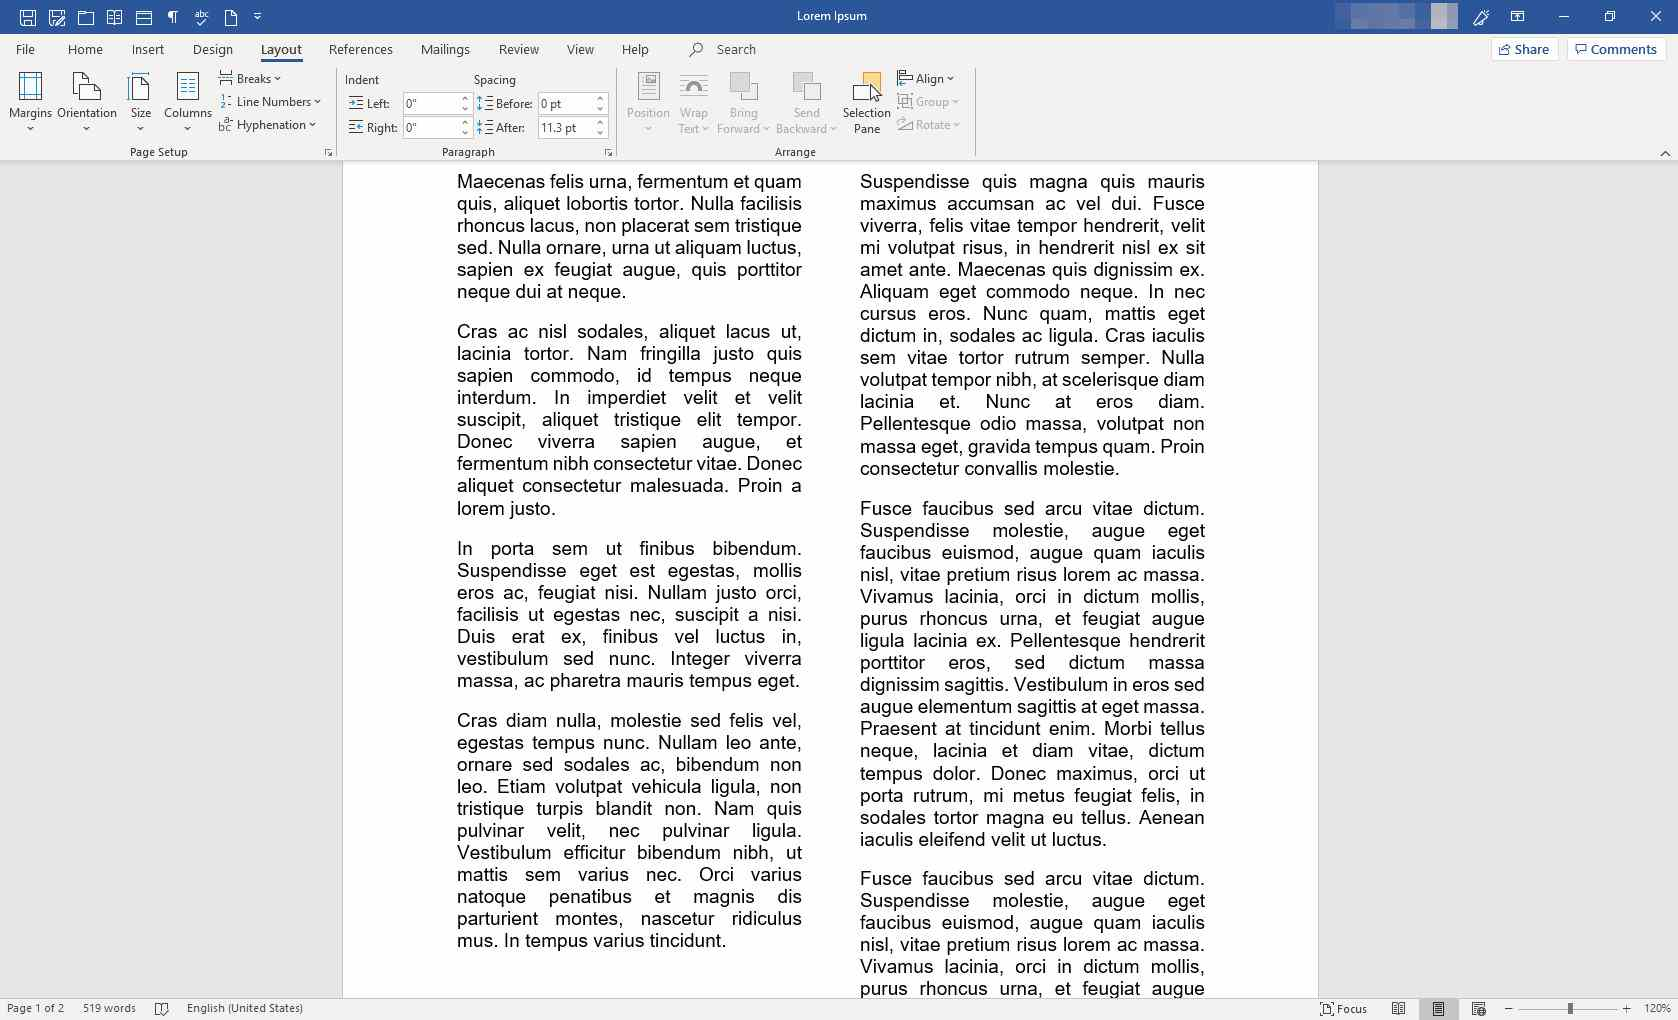 MS Word with column break inserted